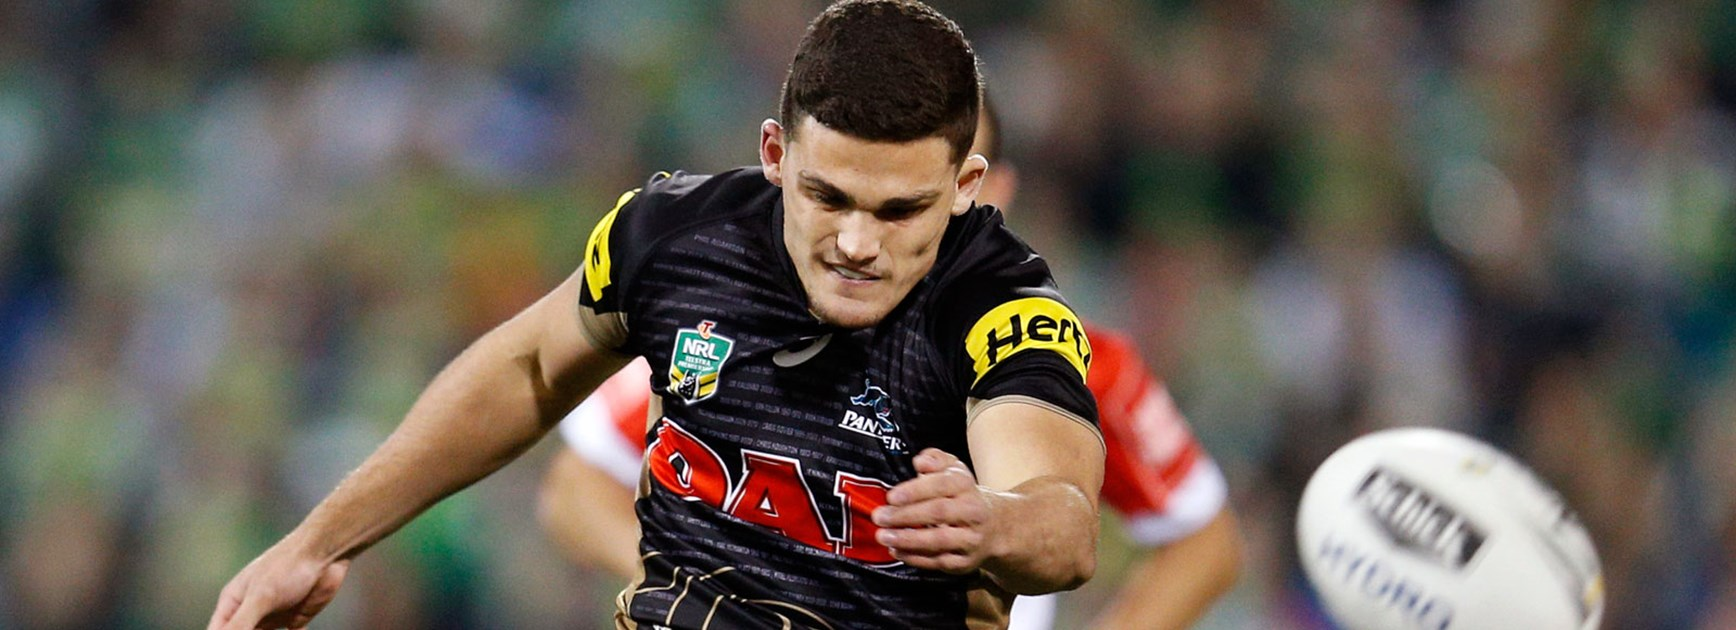 Panthers halfback Nathan Cleary against the Raiders in Finals Week 2.